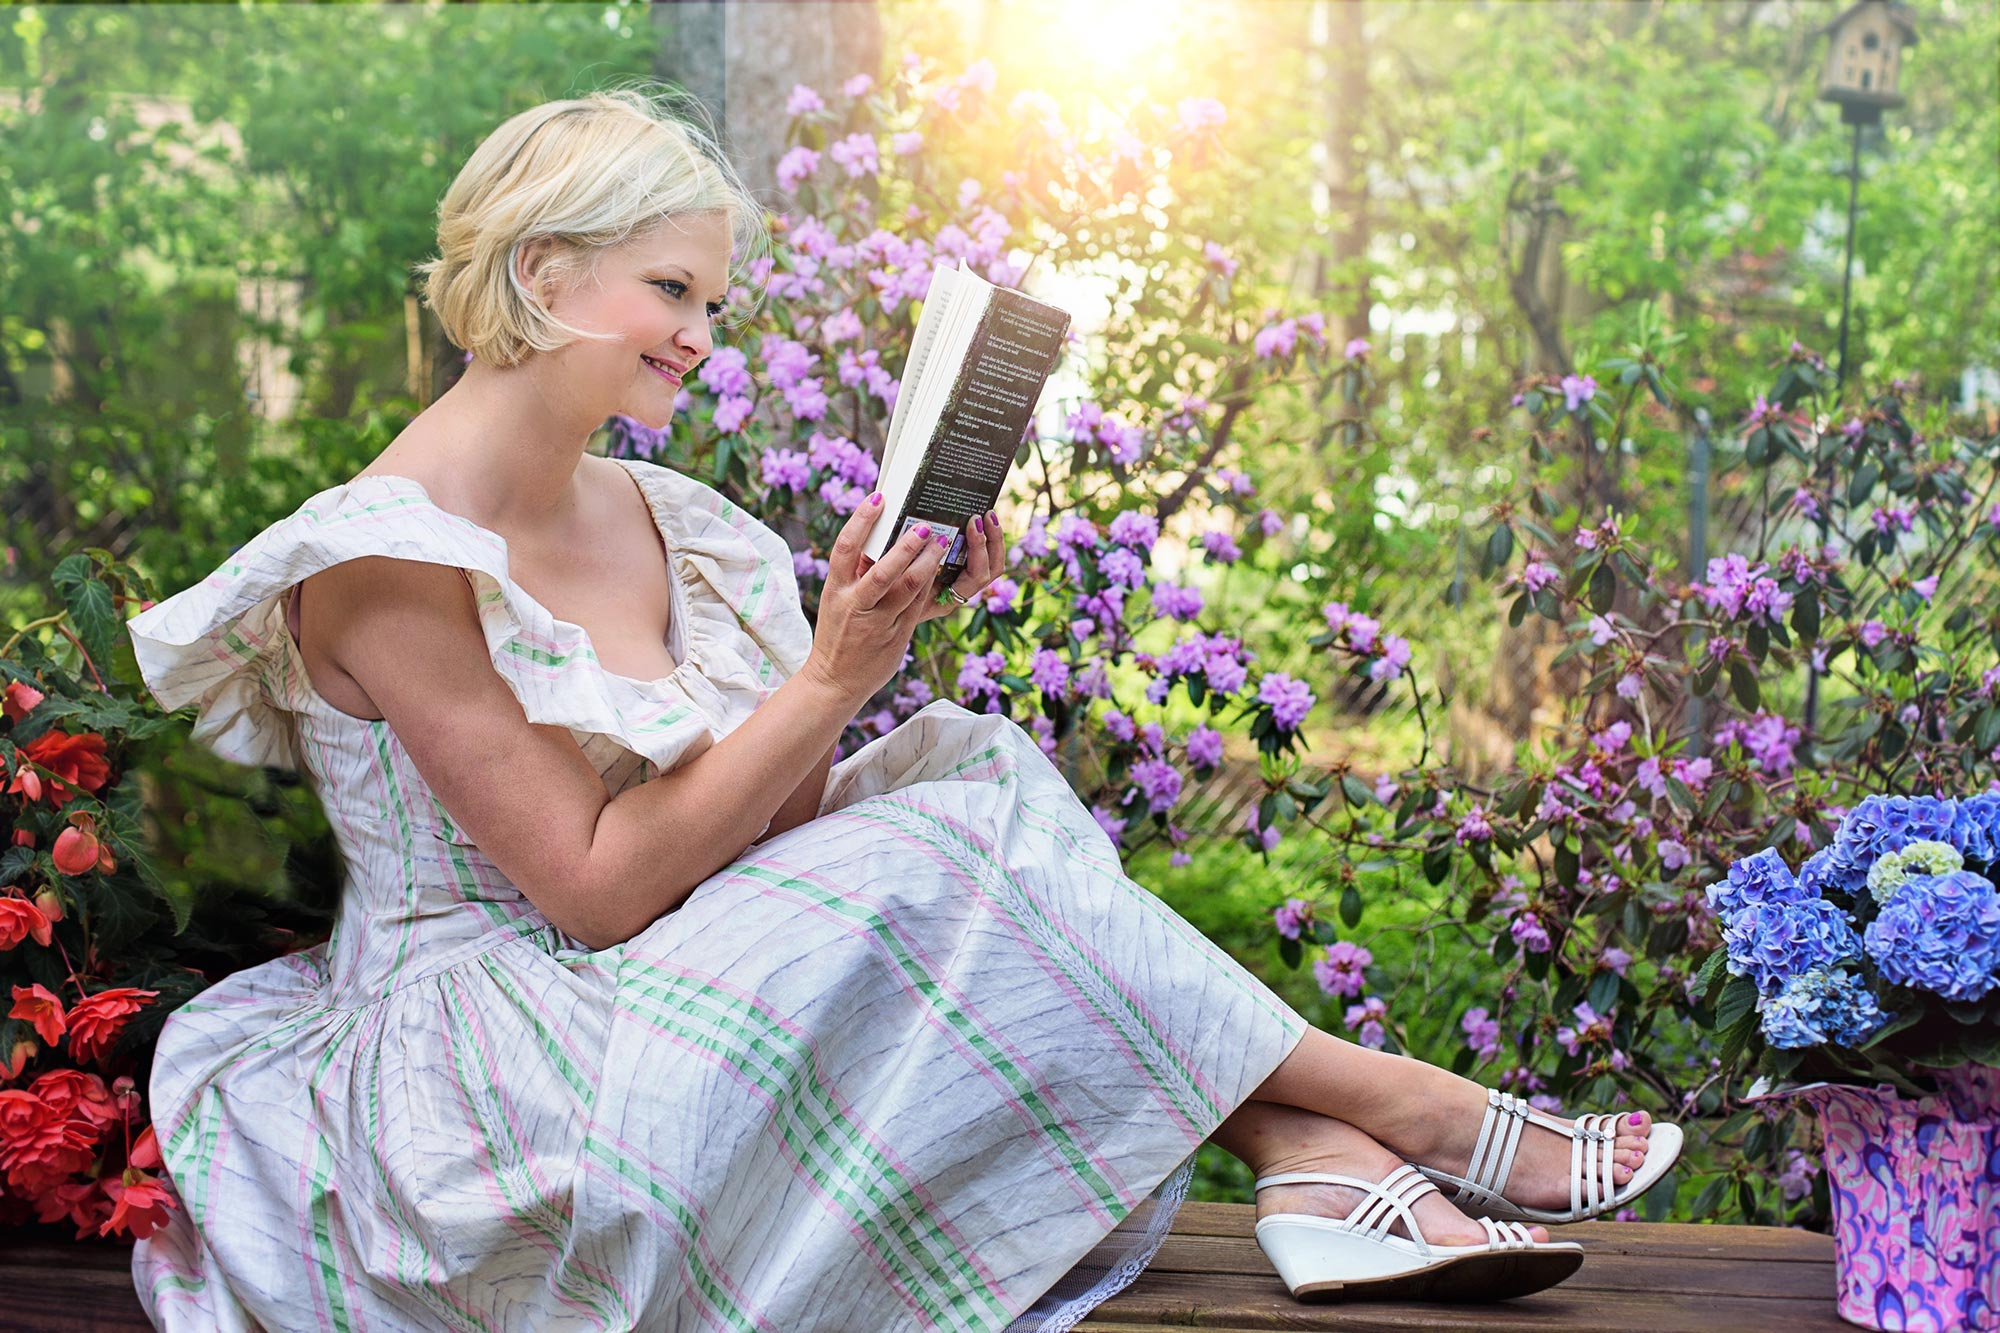 Scientific Research Uncovers Benefits of Reading Outdoors